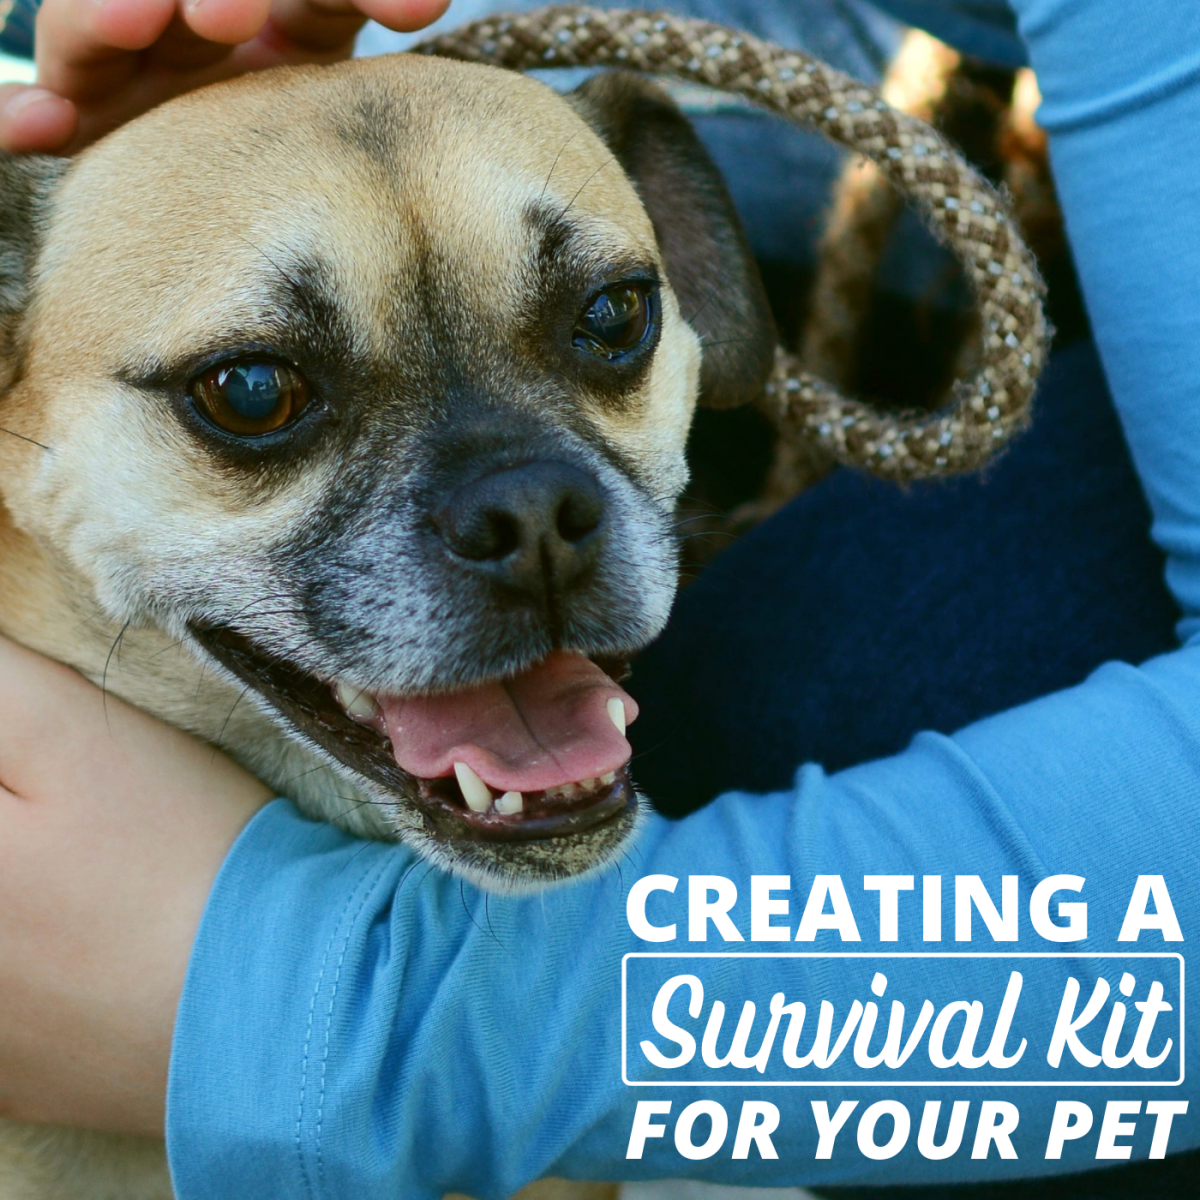 If disaster strikes and you need to move fast, having a survival bag for your pet can make things so much easier.